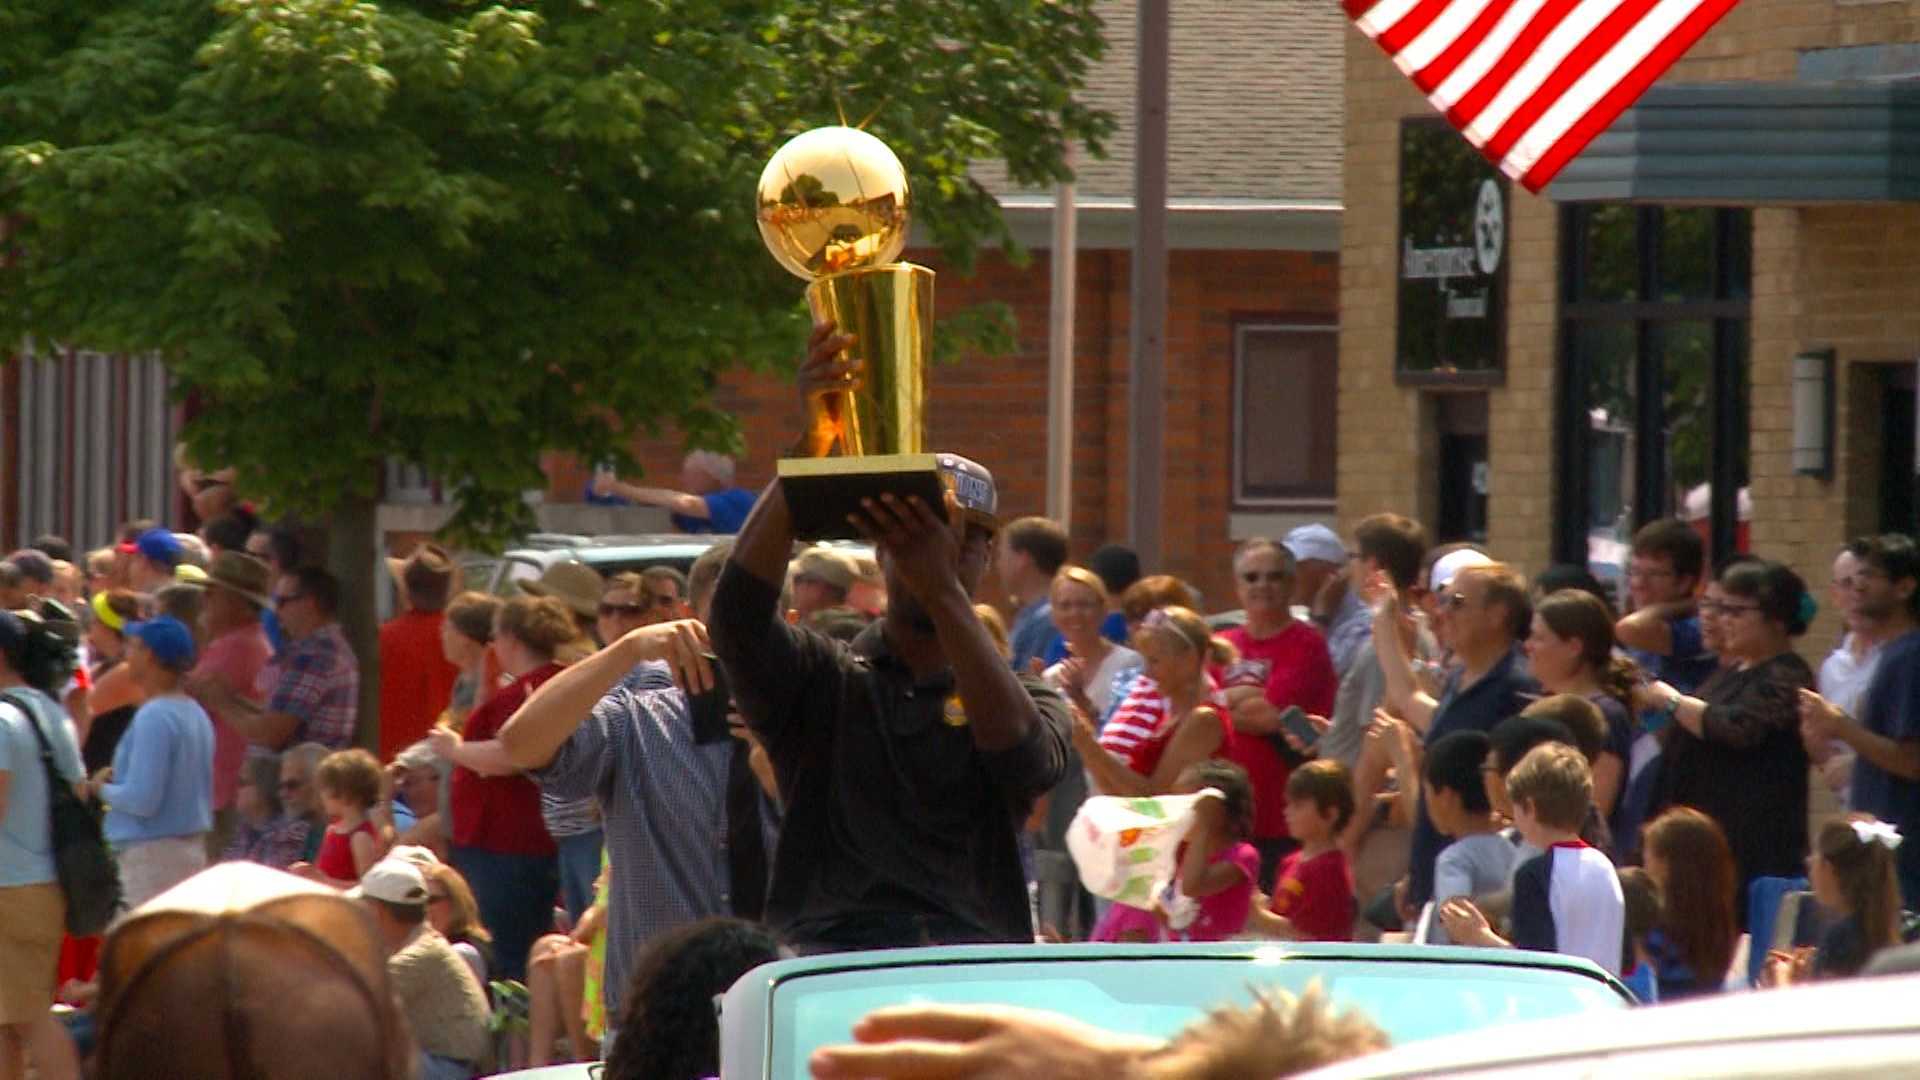 Harrison Barnes returned to Ames with his new trophy in hand.